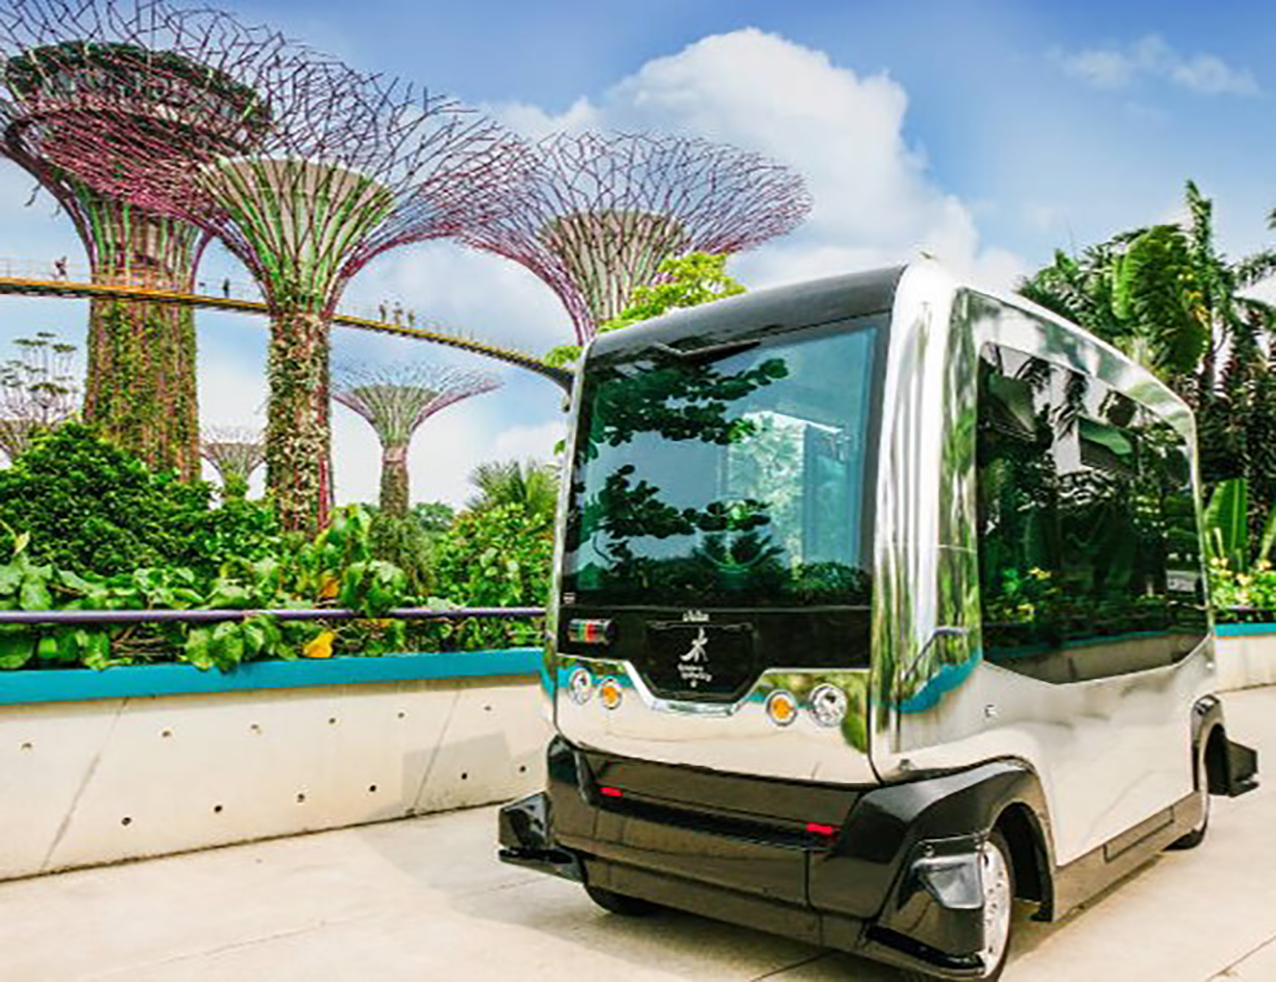 Autonomous driving in the gardens by the bay. OSRAM Management Conference organised by Prio Event Management.